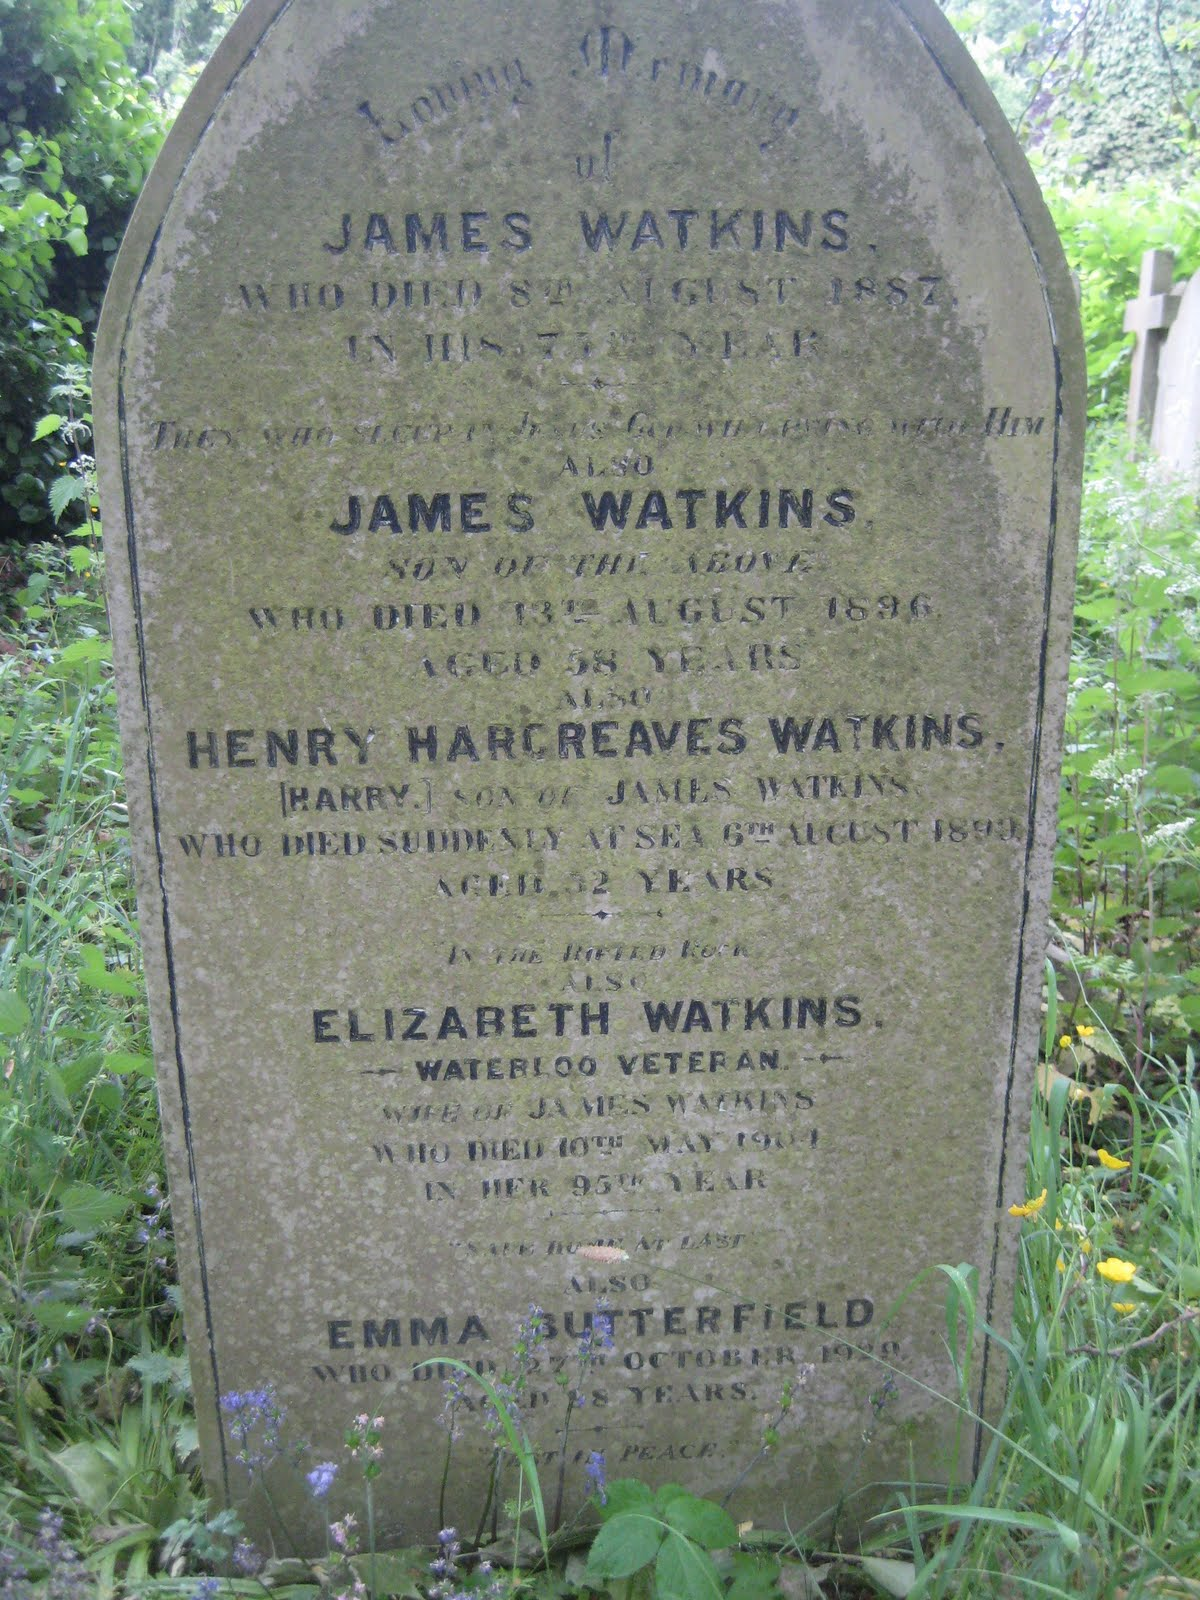 Gravestone of Elizabeth Watkins, Waterloo veteran